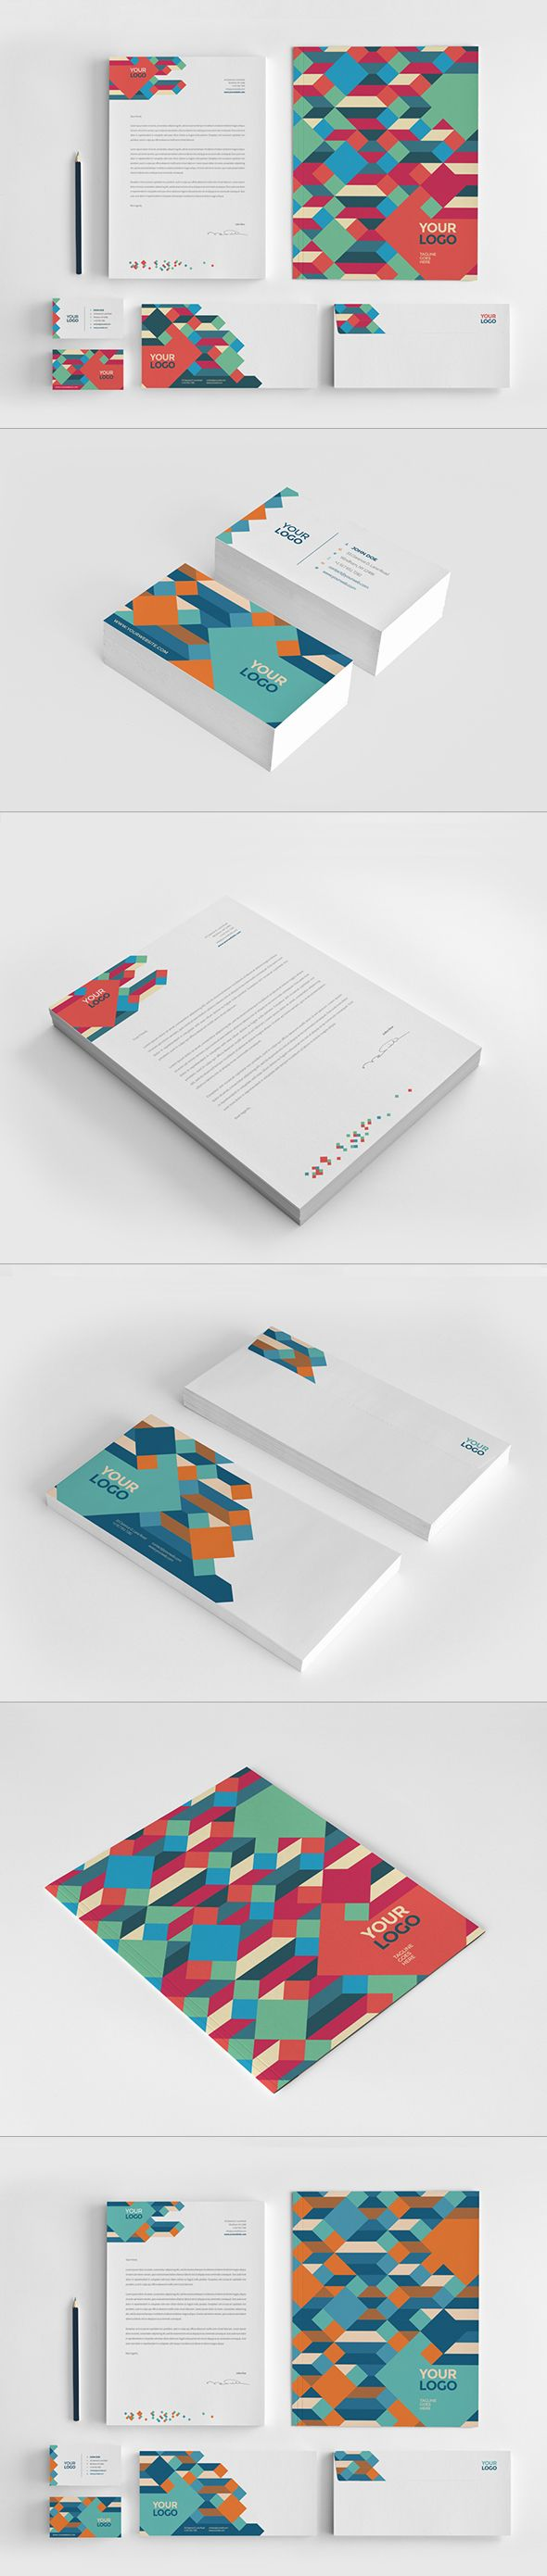 Clean Colorful Stationery on Behance